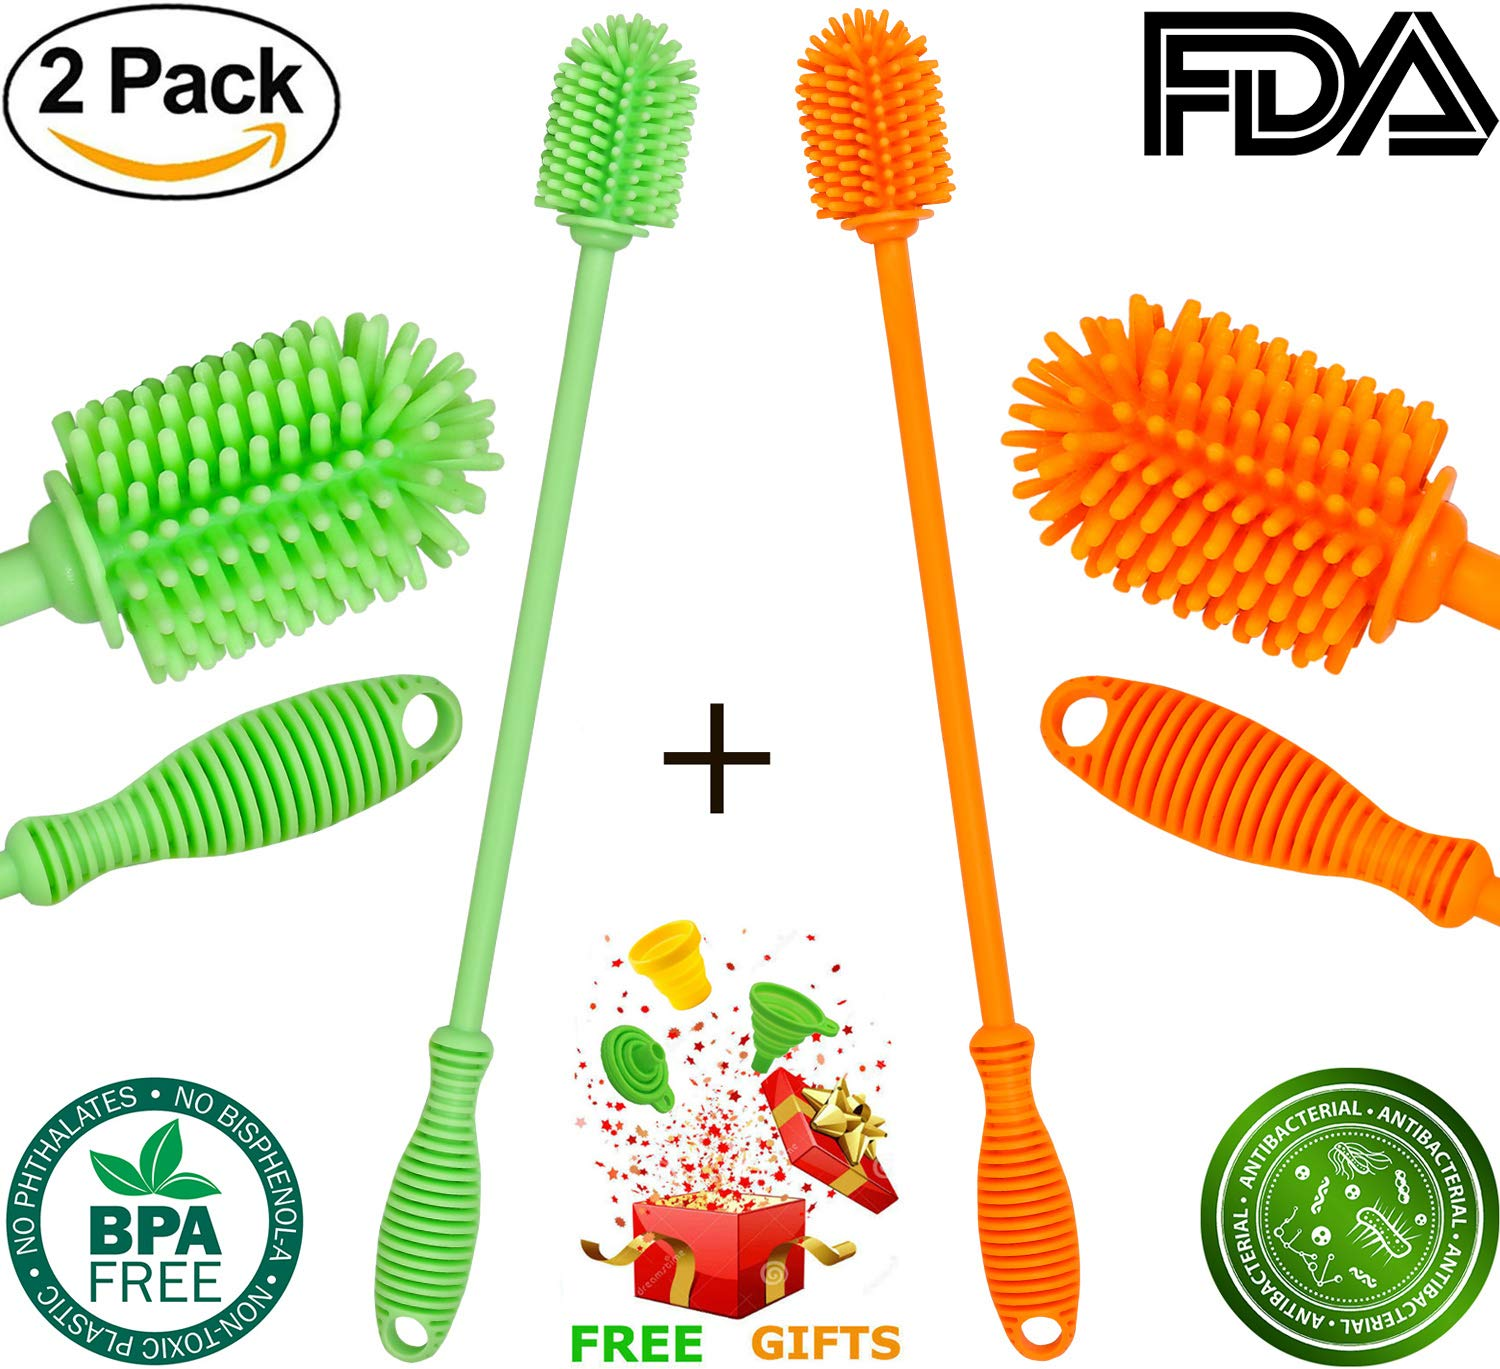 Silicone Bottle Cleaner Brush - Antibacterial Bottle Cleaning Brush Set Long Handle for Washing Water Bottle Baby Bottle Thermos Coffee Shaker Glasses Travel Cup Dish Washer Brushes, 2-Pack